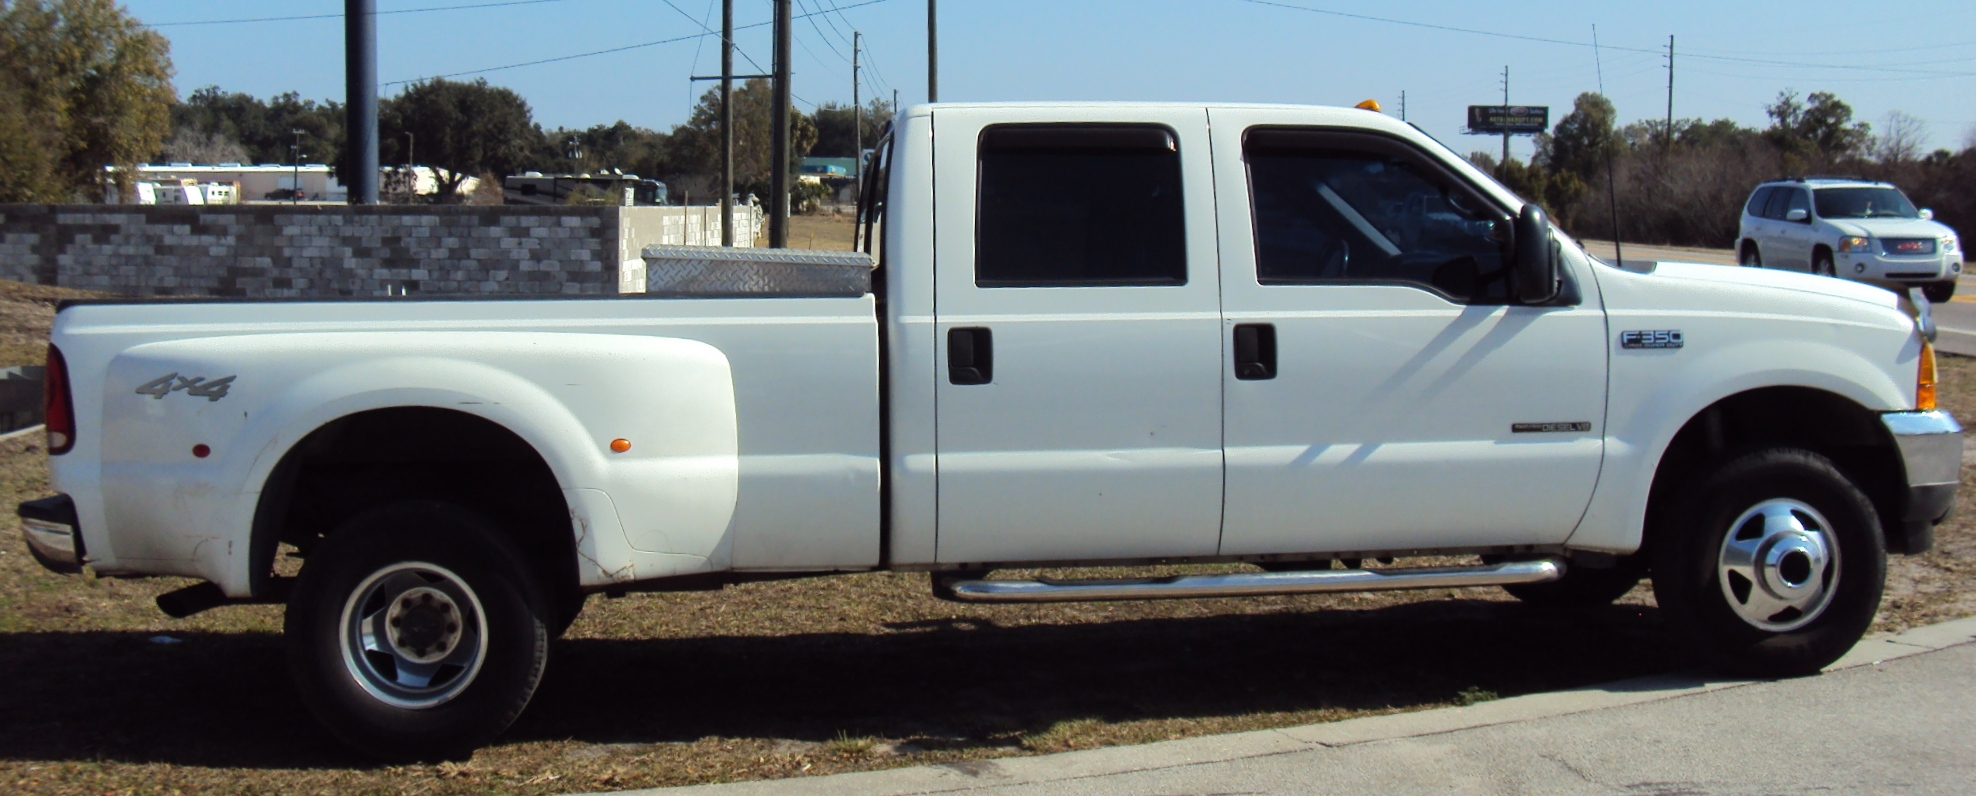 2001 Ford F350 Super Duty Super Cab and 2009 Ford Super Duty Truck Bed